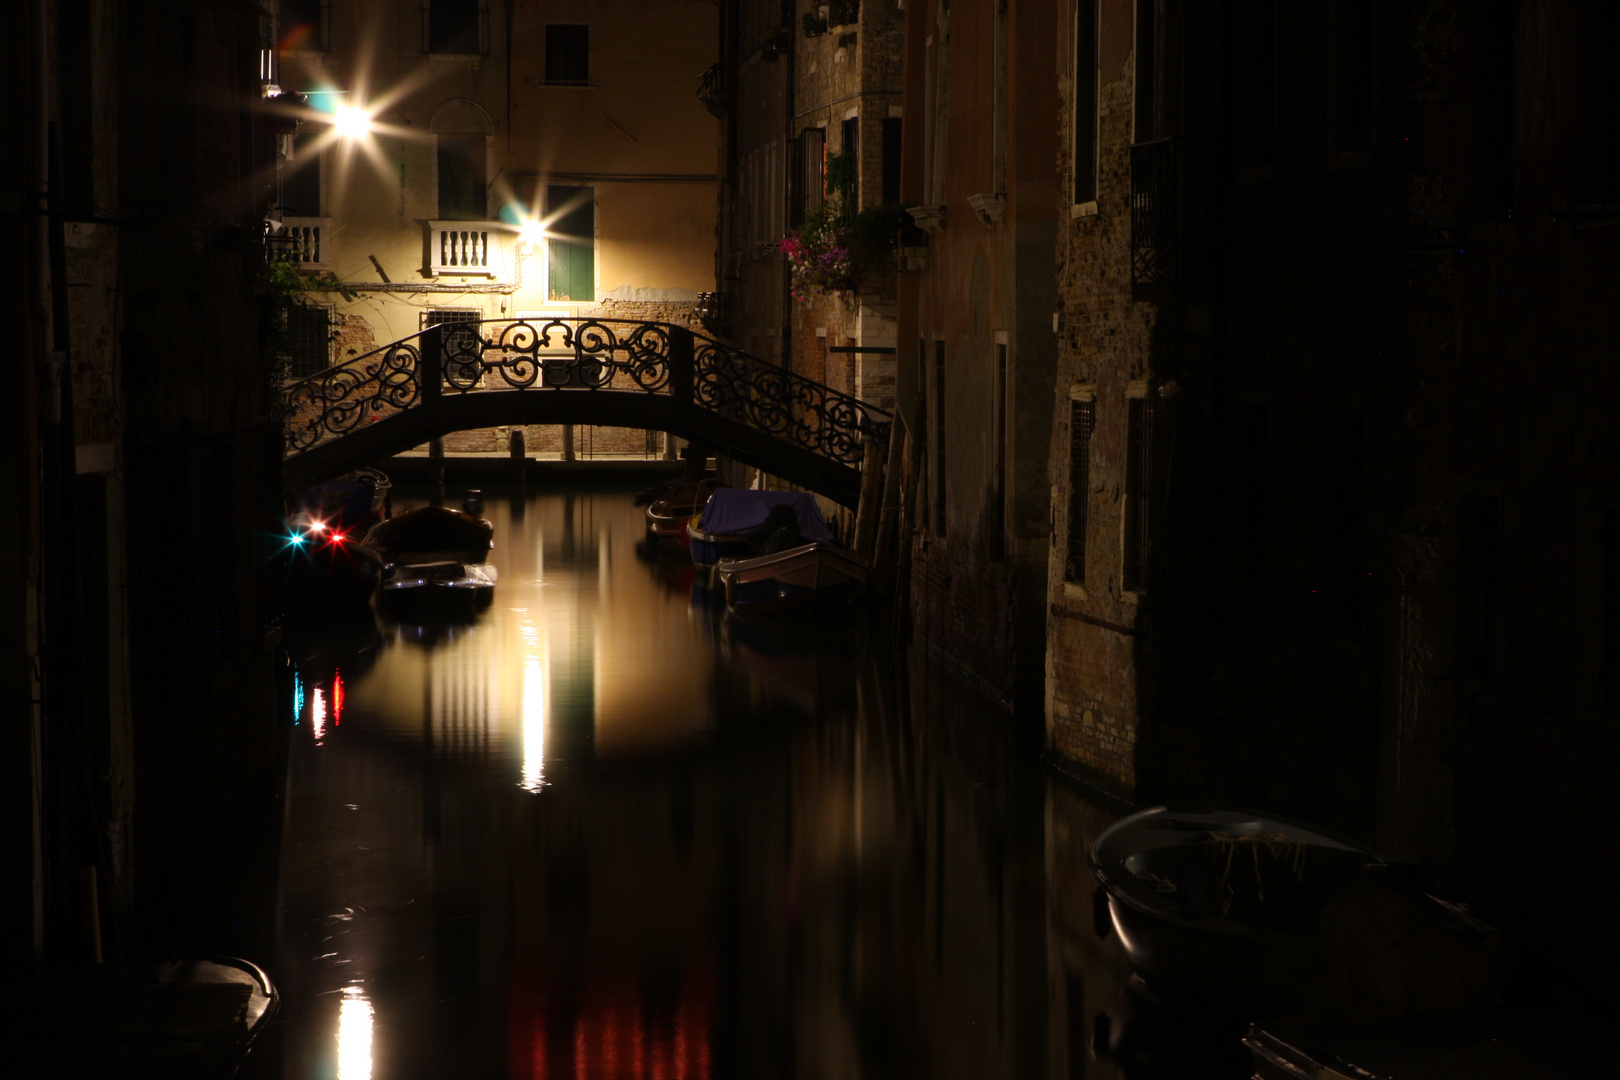 Venice canal in the night